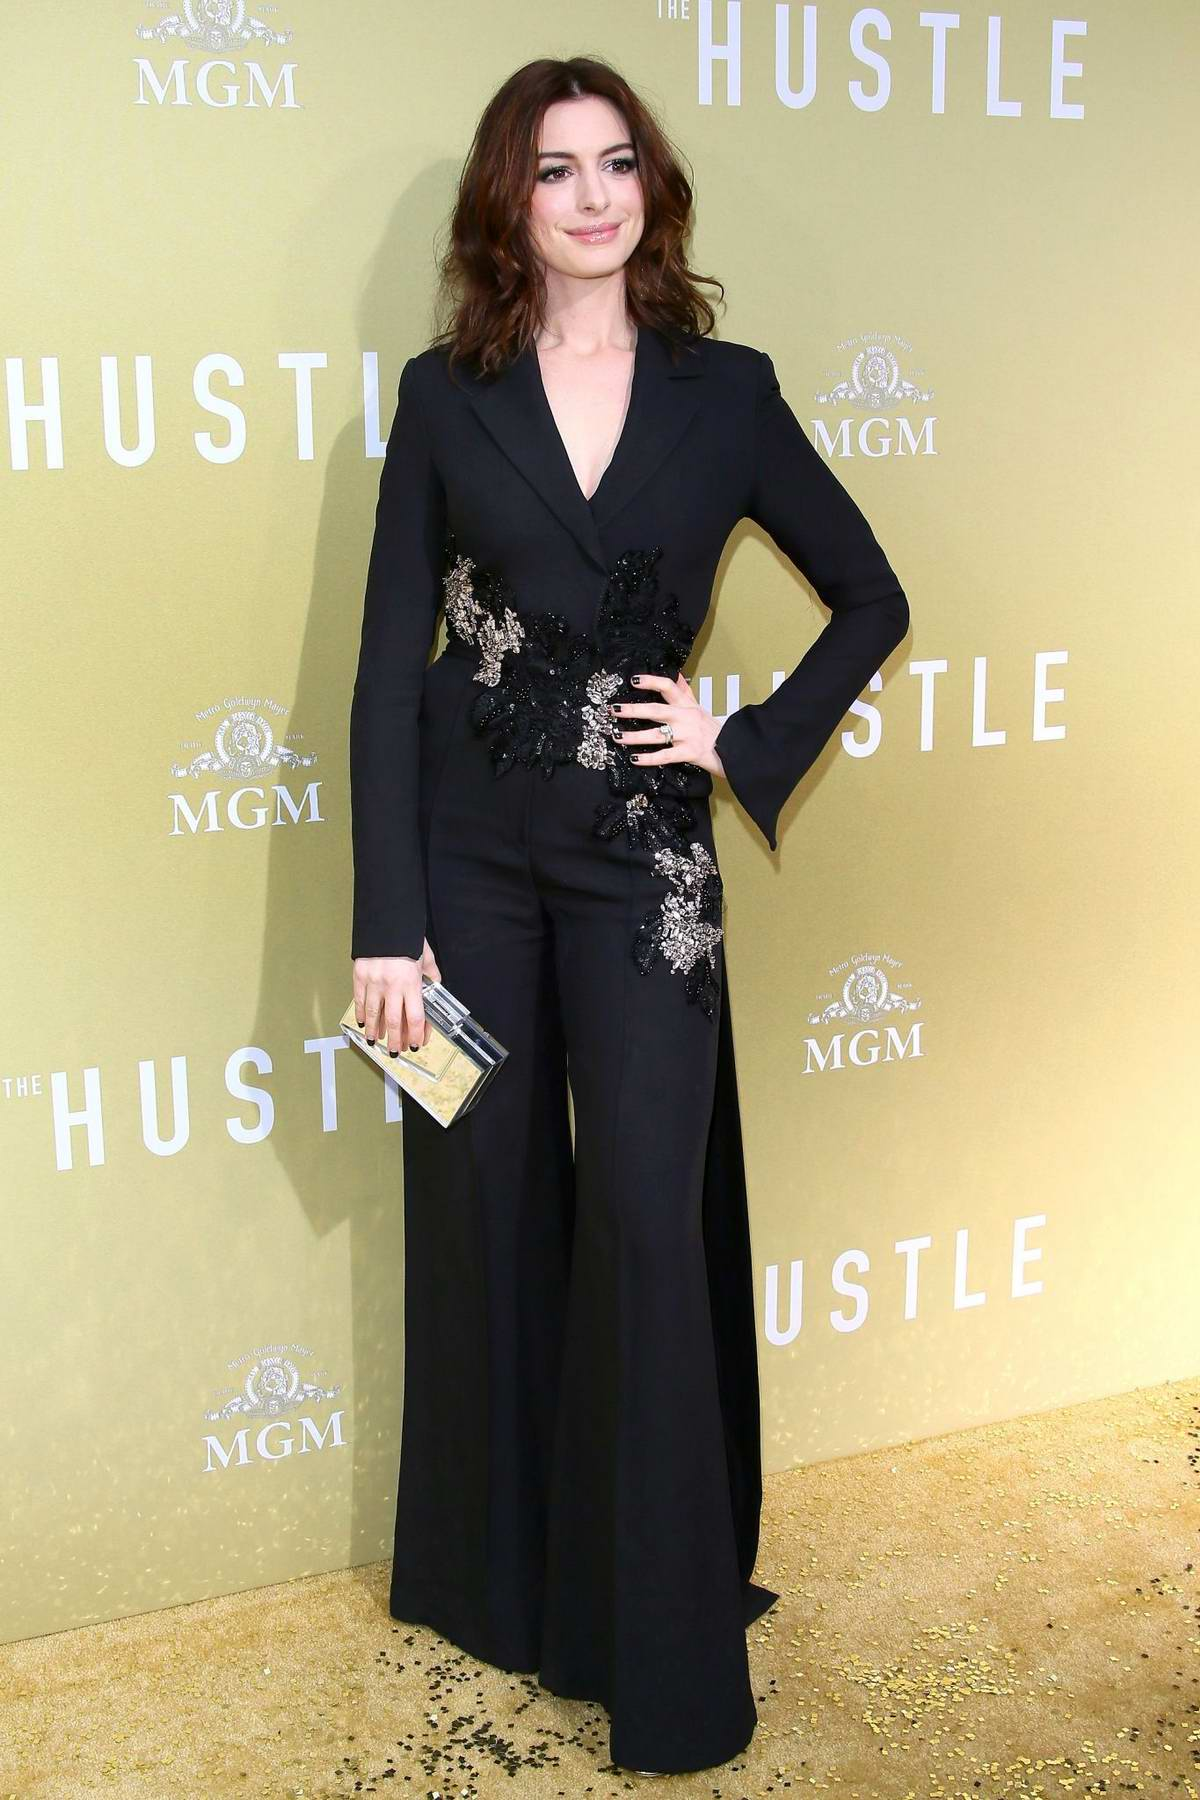 Anne Hathaway attends the premiere of 'The Hustle' at Arclight Cinerama Dome in Hollywood, California